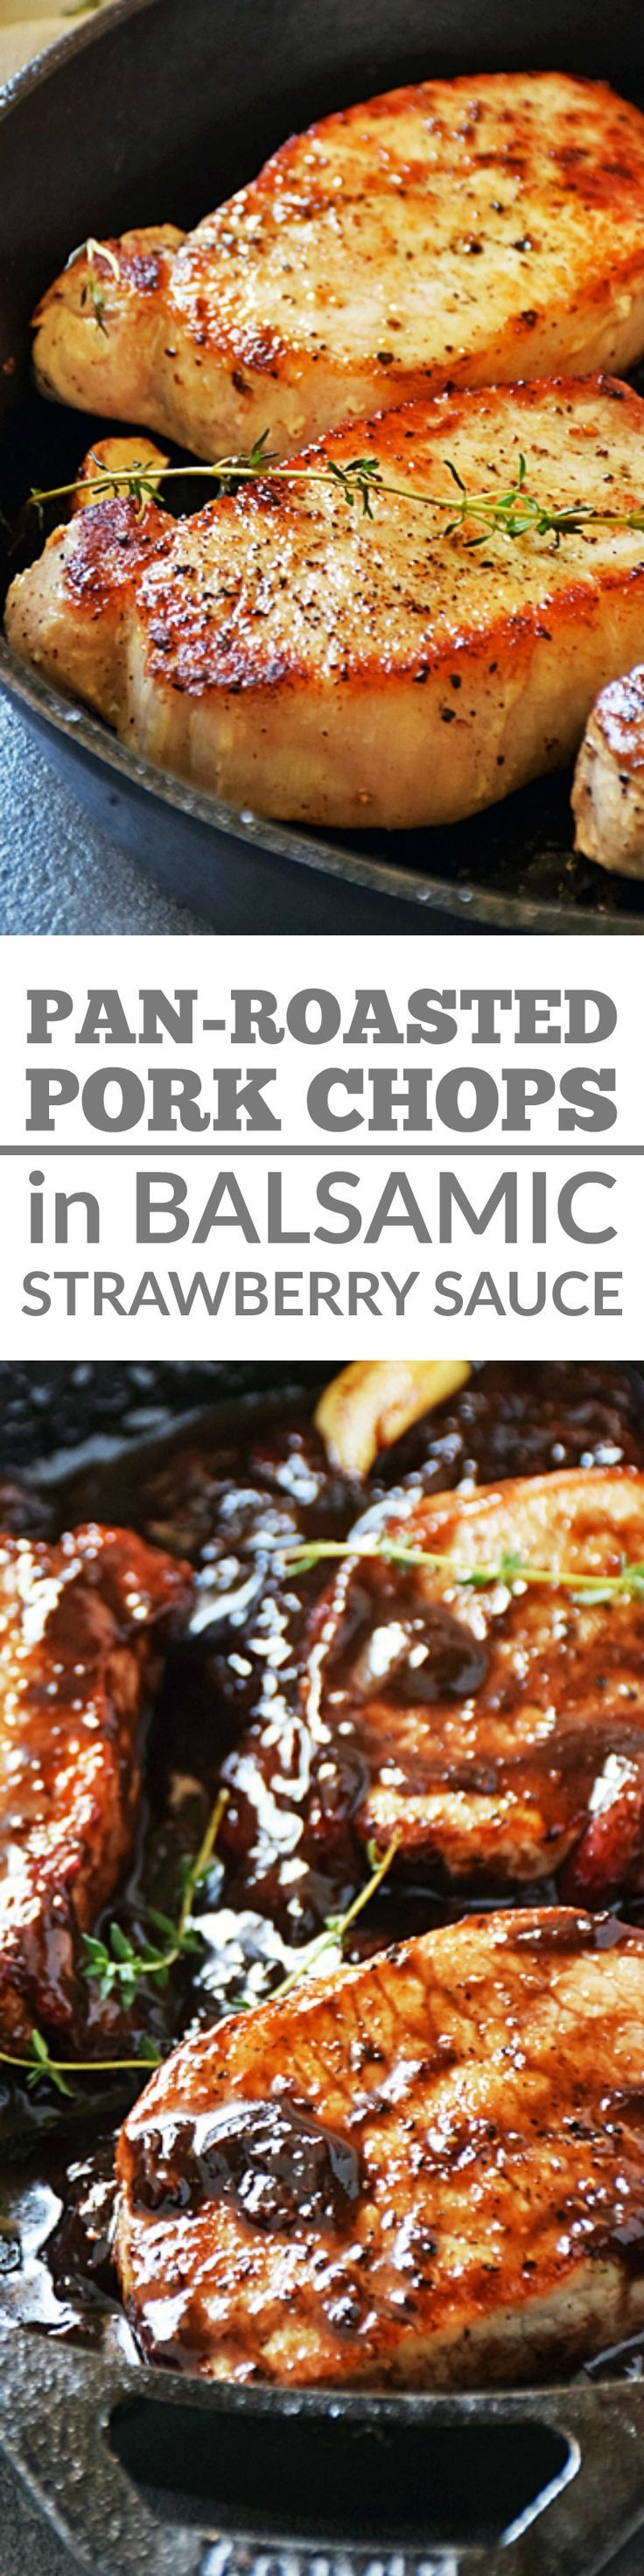 Pork Chops with Balsamic-Strawberry Sauce is a deliciously easy dinner that's on the table in about 30 minutes from start to finish! I love using fresh ingredients to maximize flavor in easy recipes. #SundaySupper #FLStrawberry /Flastrawberries/